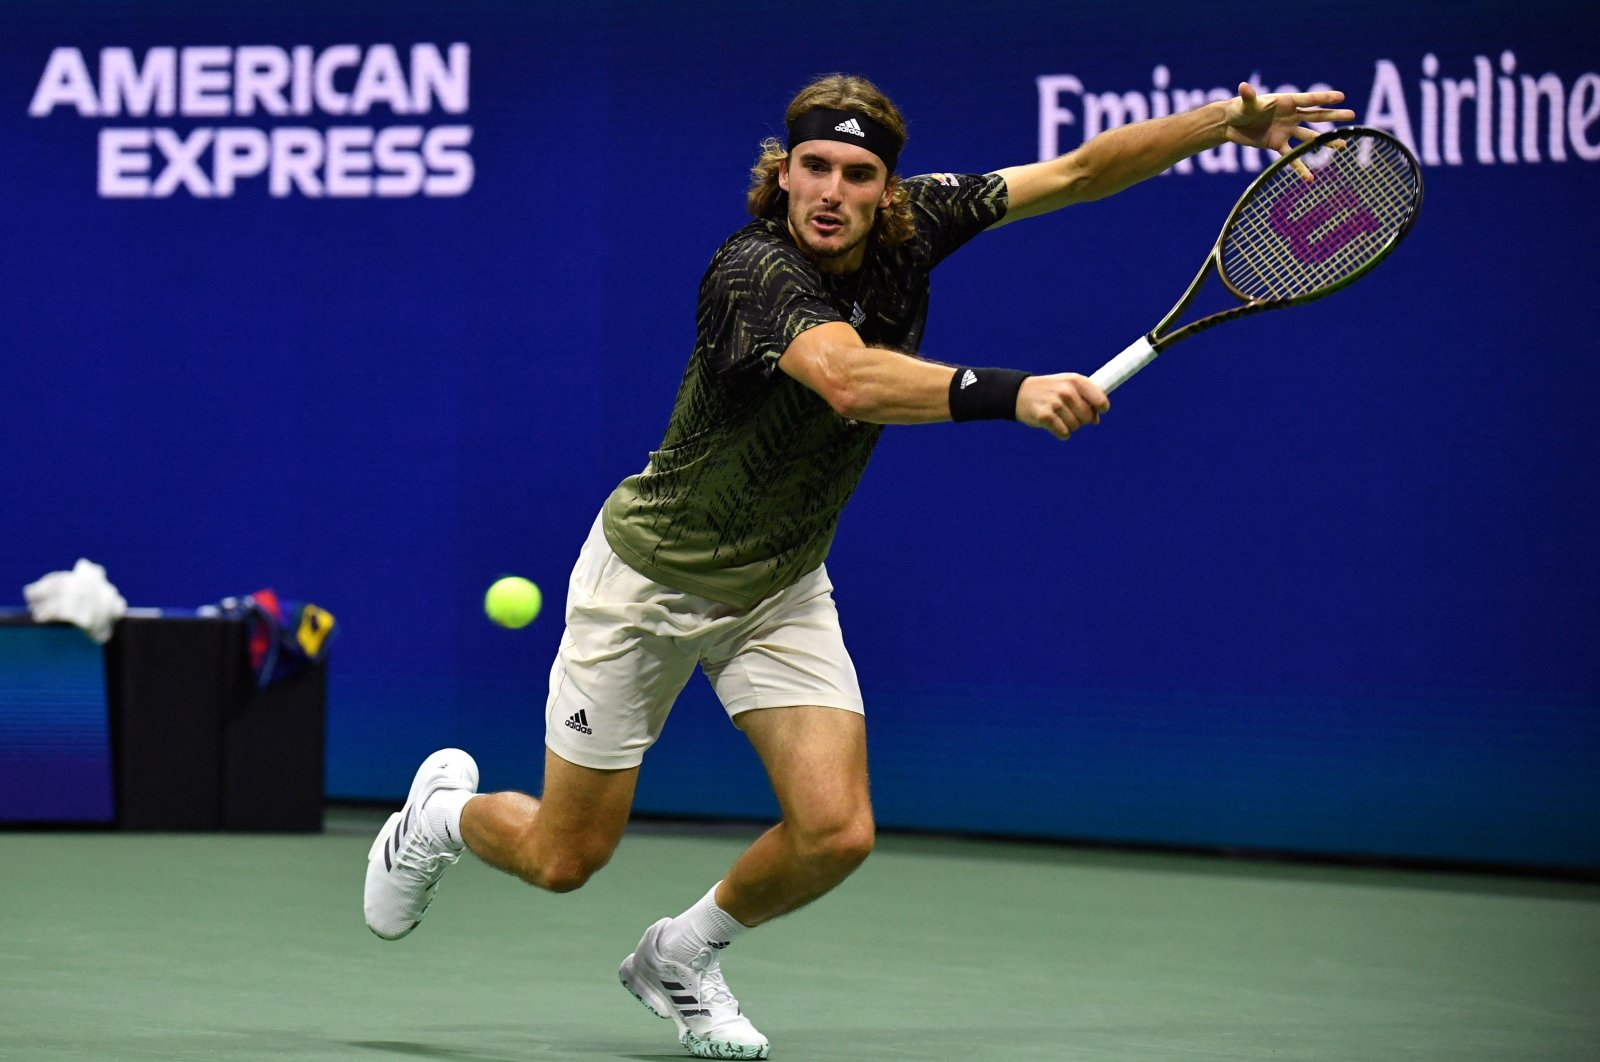 Greece's Stefanos Tsitsipas hits a return to France's Adrian Mannarino during their 2021 U.S. Open men's singles second-round match in New York, U.S., Sept. 1, 2021. (AFP Photo)